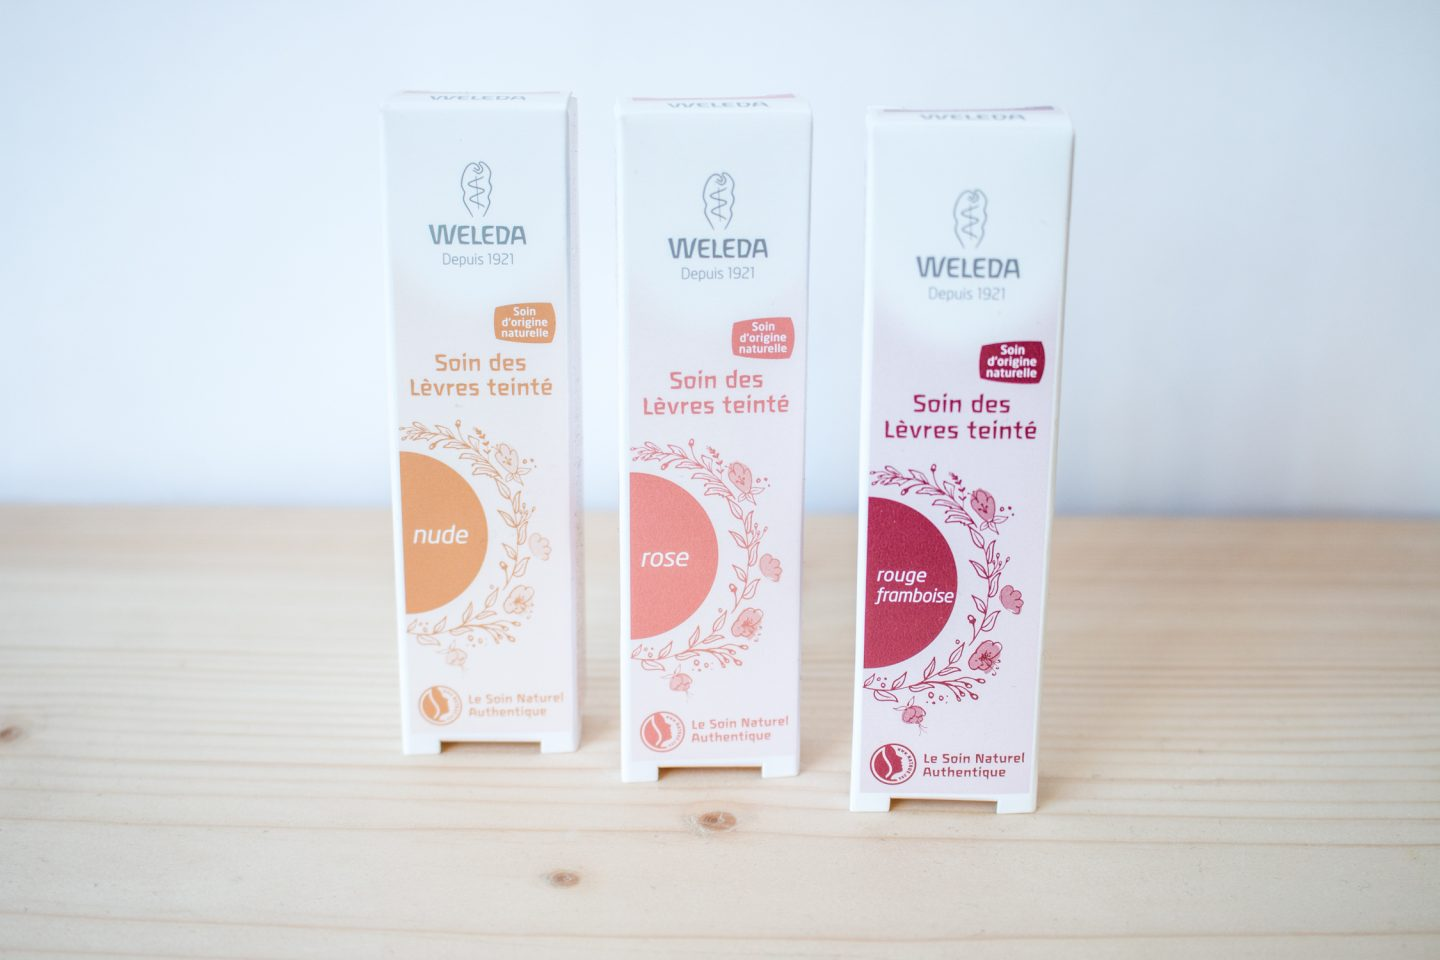 What's New Beauty World #Weleda